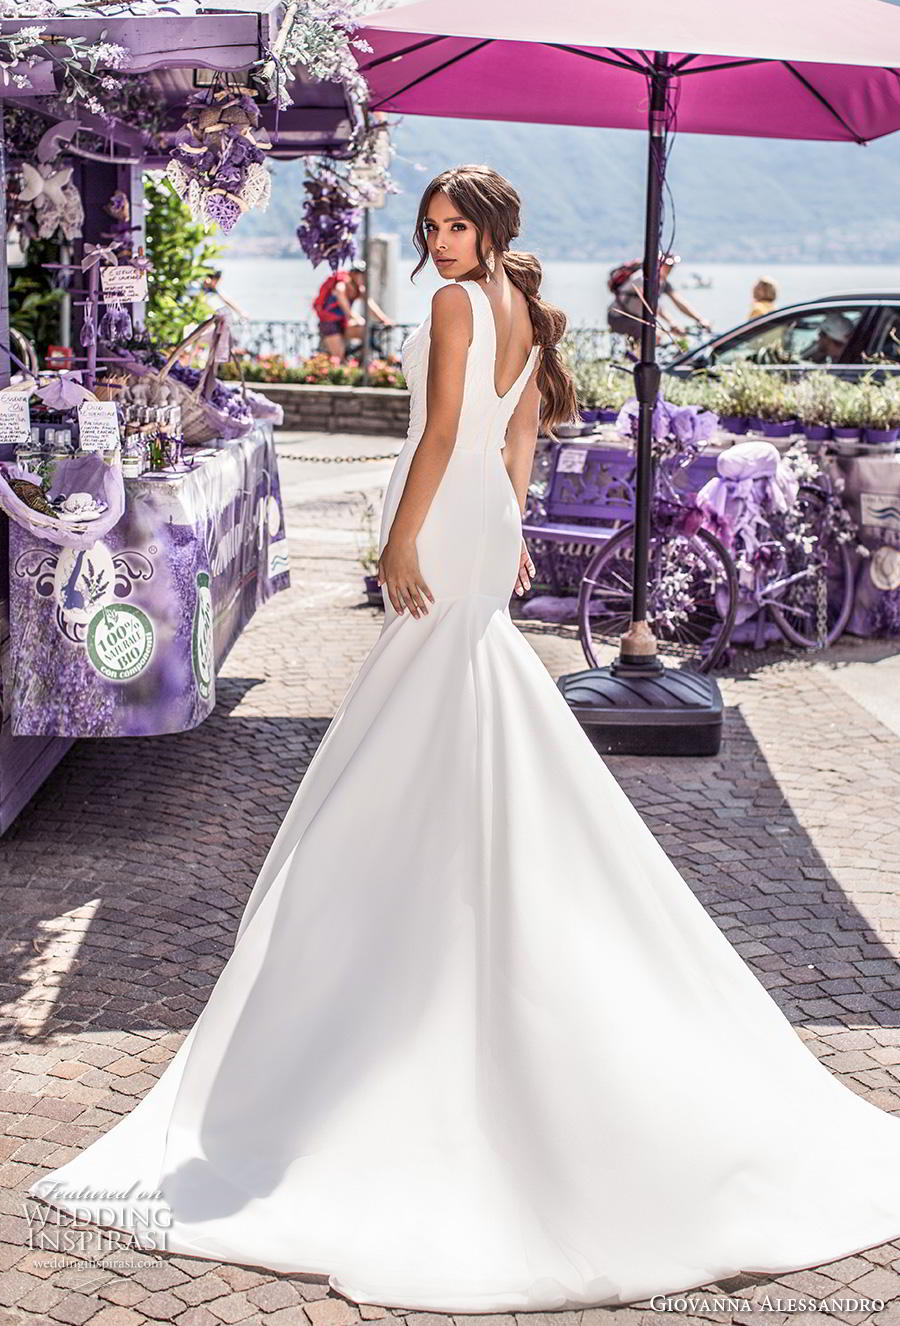 giovanna alessandro 2019 bridal sleeveless v neck wrap over heavily embellished bodice simple sheath wedding dress v back chapel train (2) bv